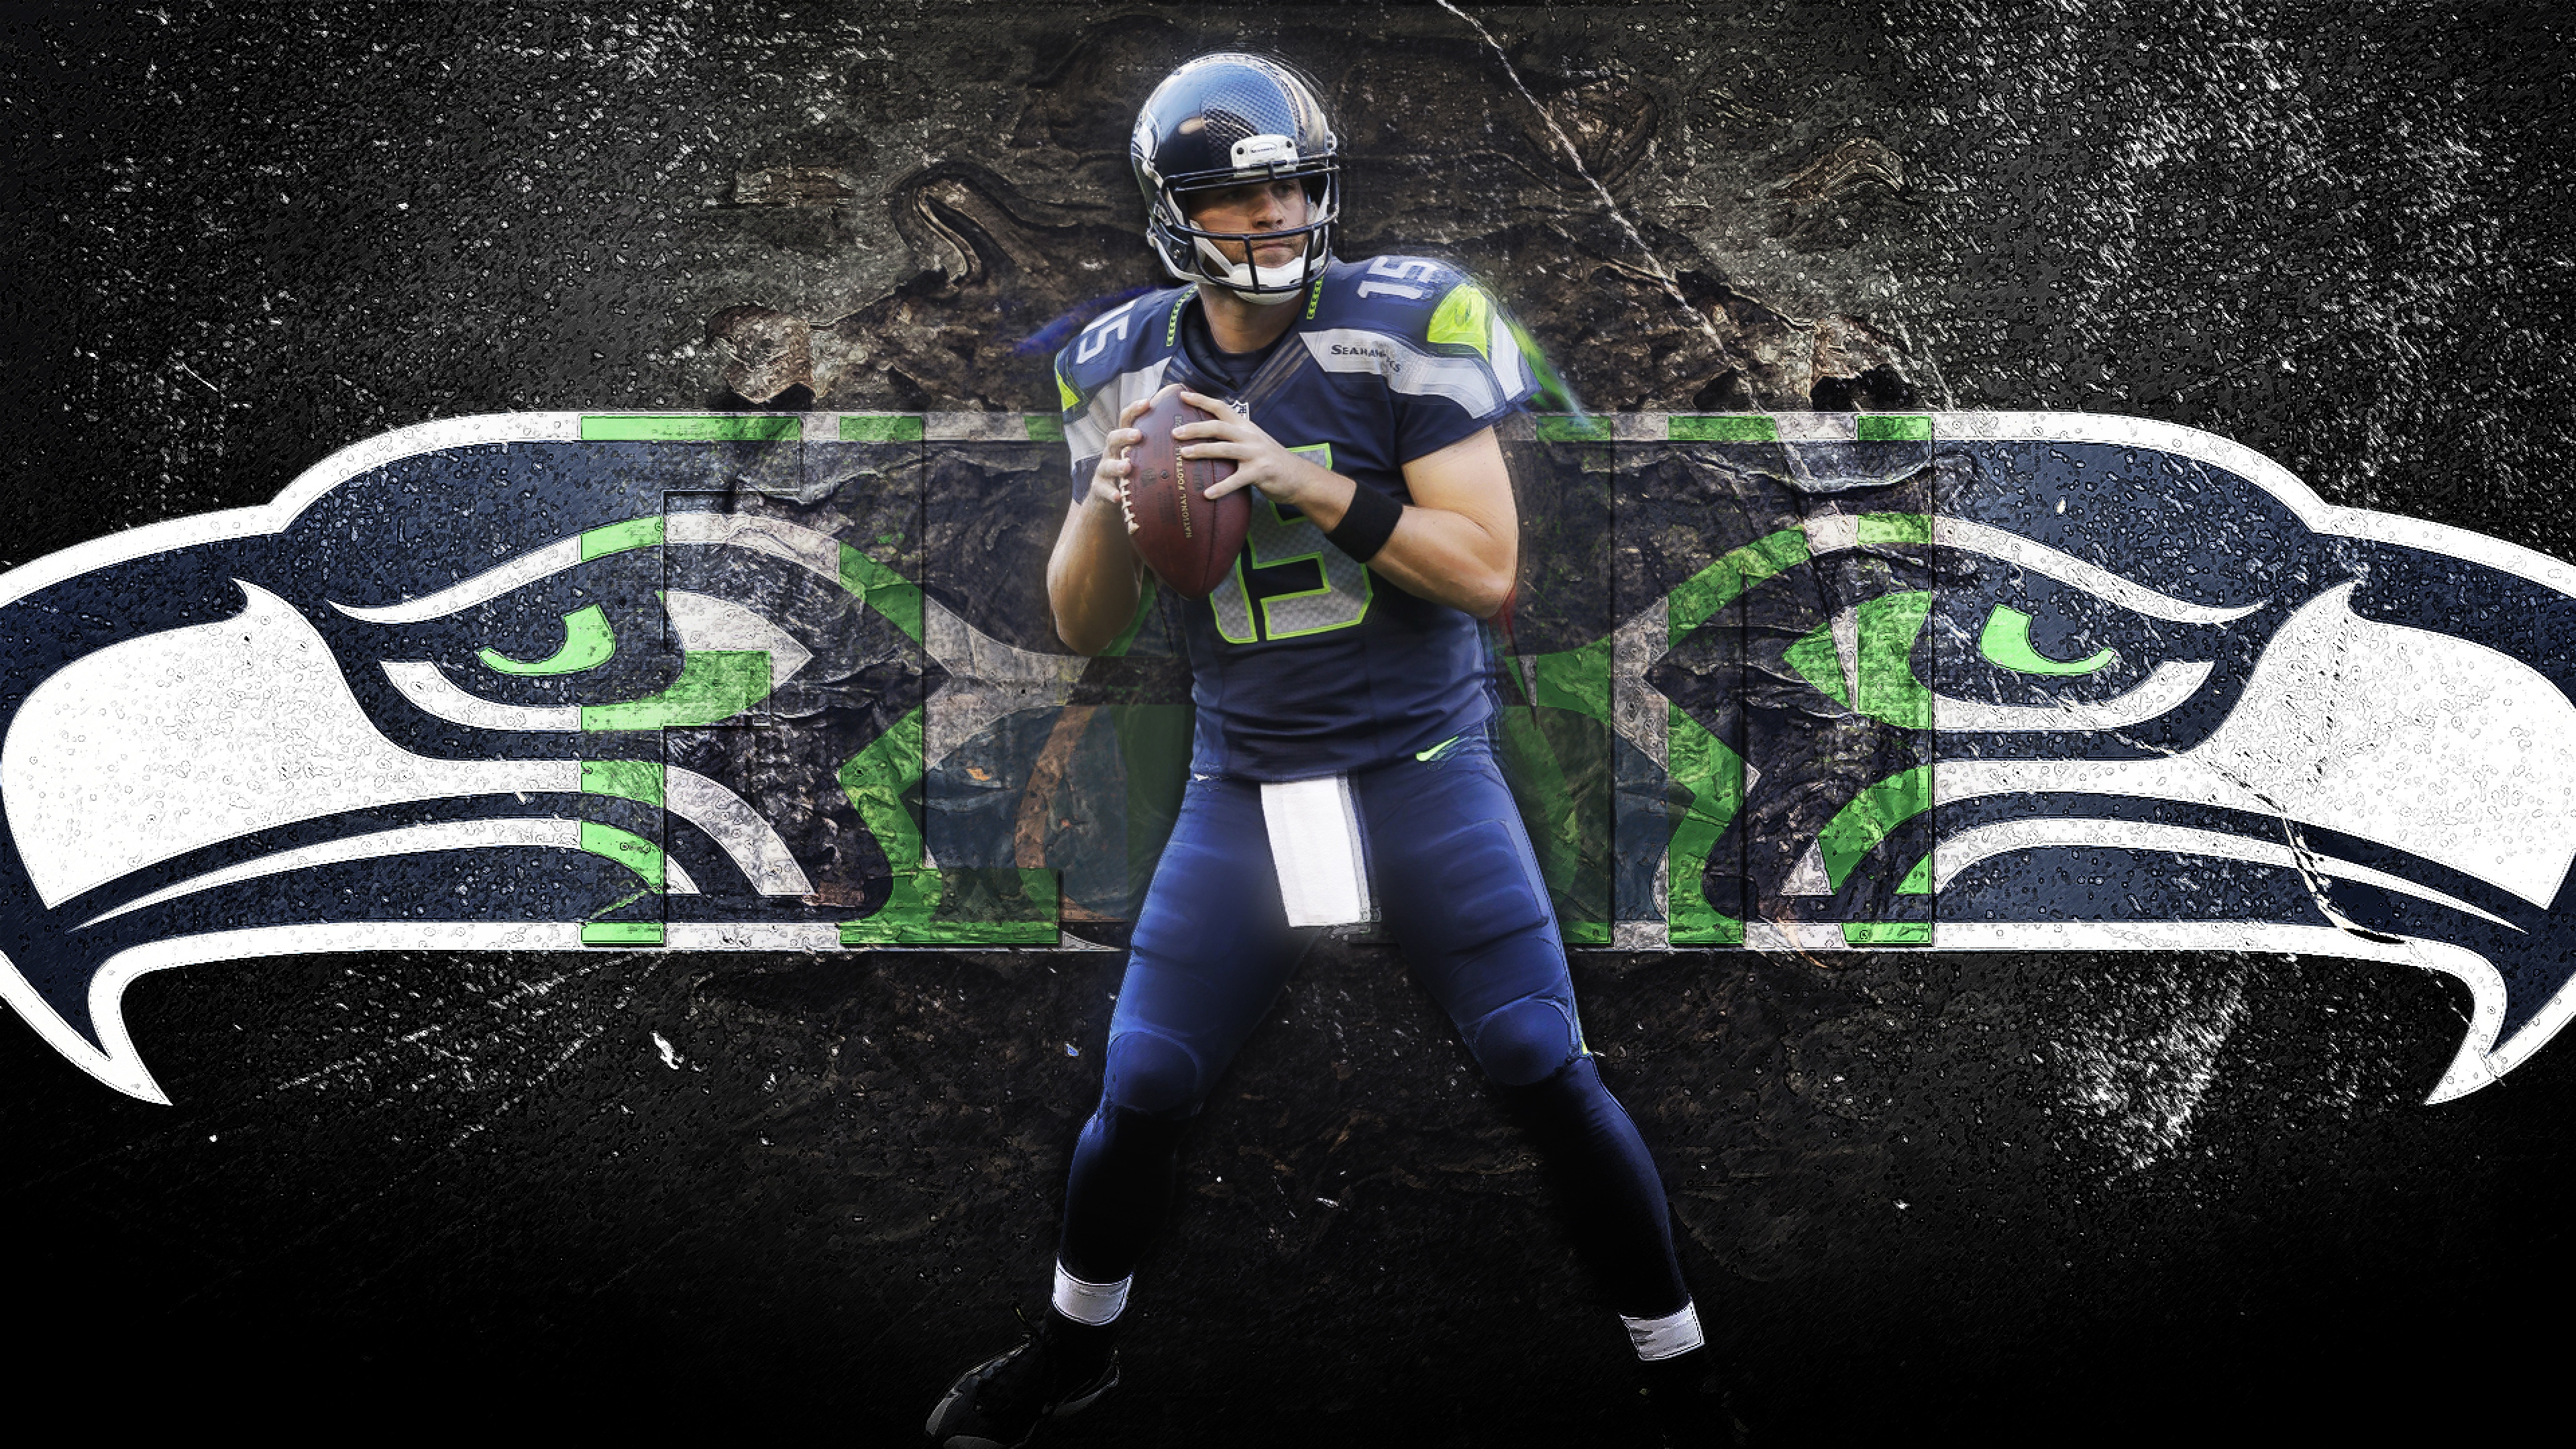 4k ultra hd seattle seahawks wallpaper media file pixelstalk view image larger and download voltagebd Image collections